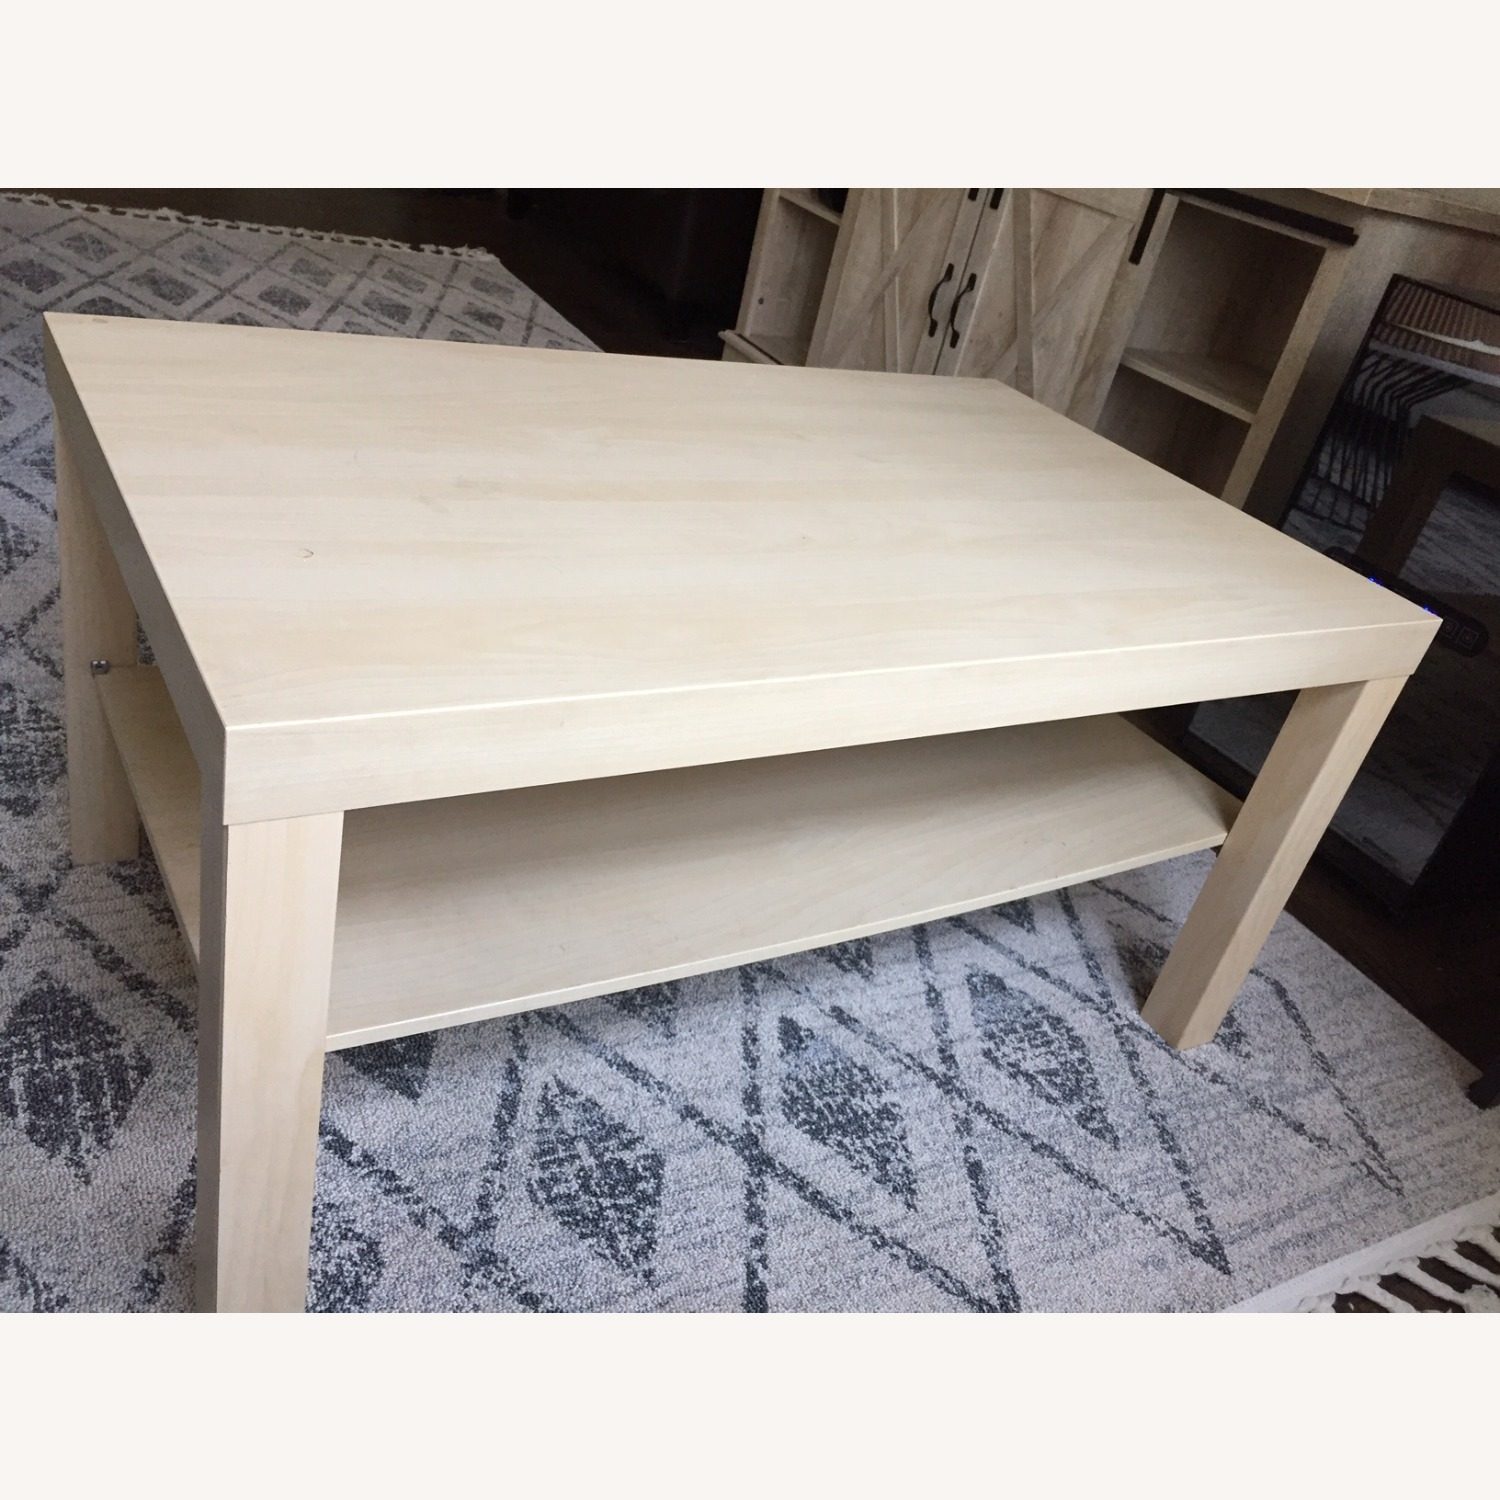 IKEA White Stained Oak Effect Lack Coffee Table - image-1